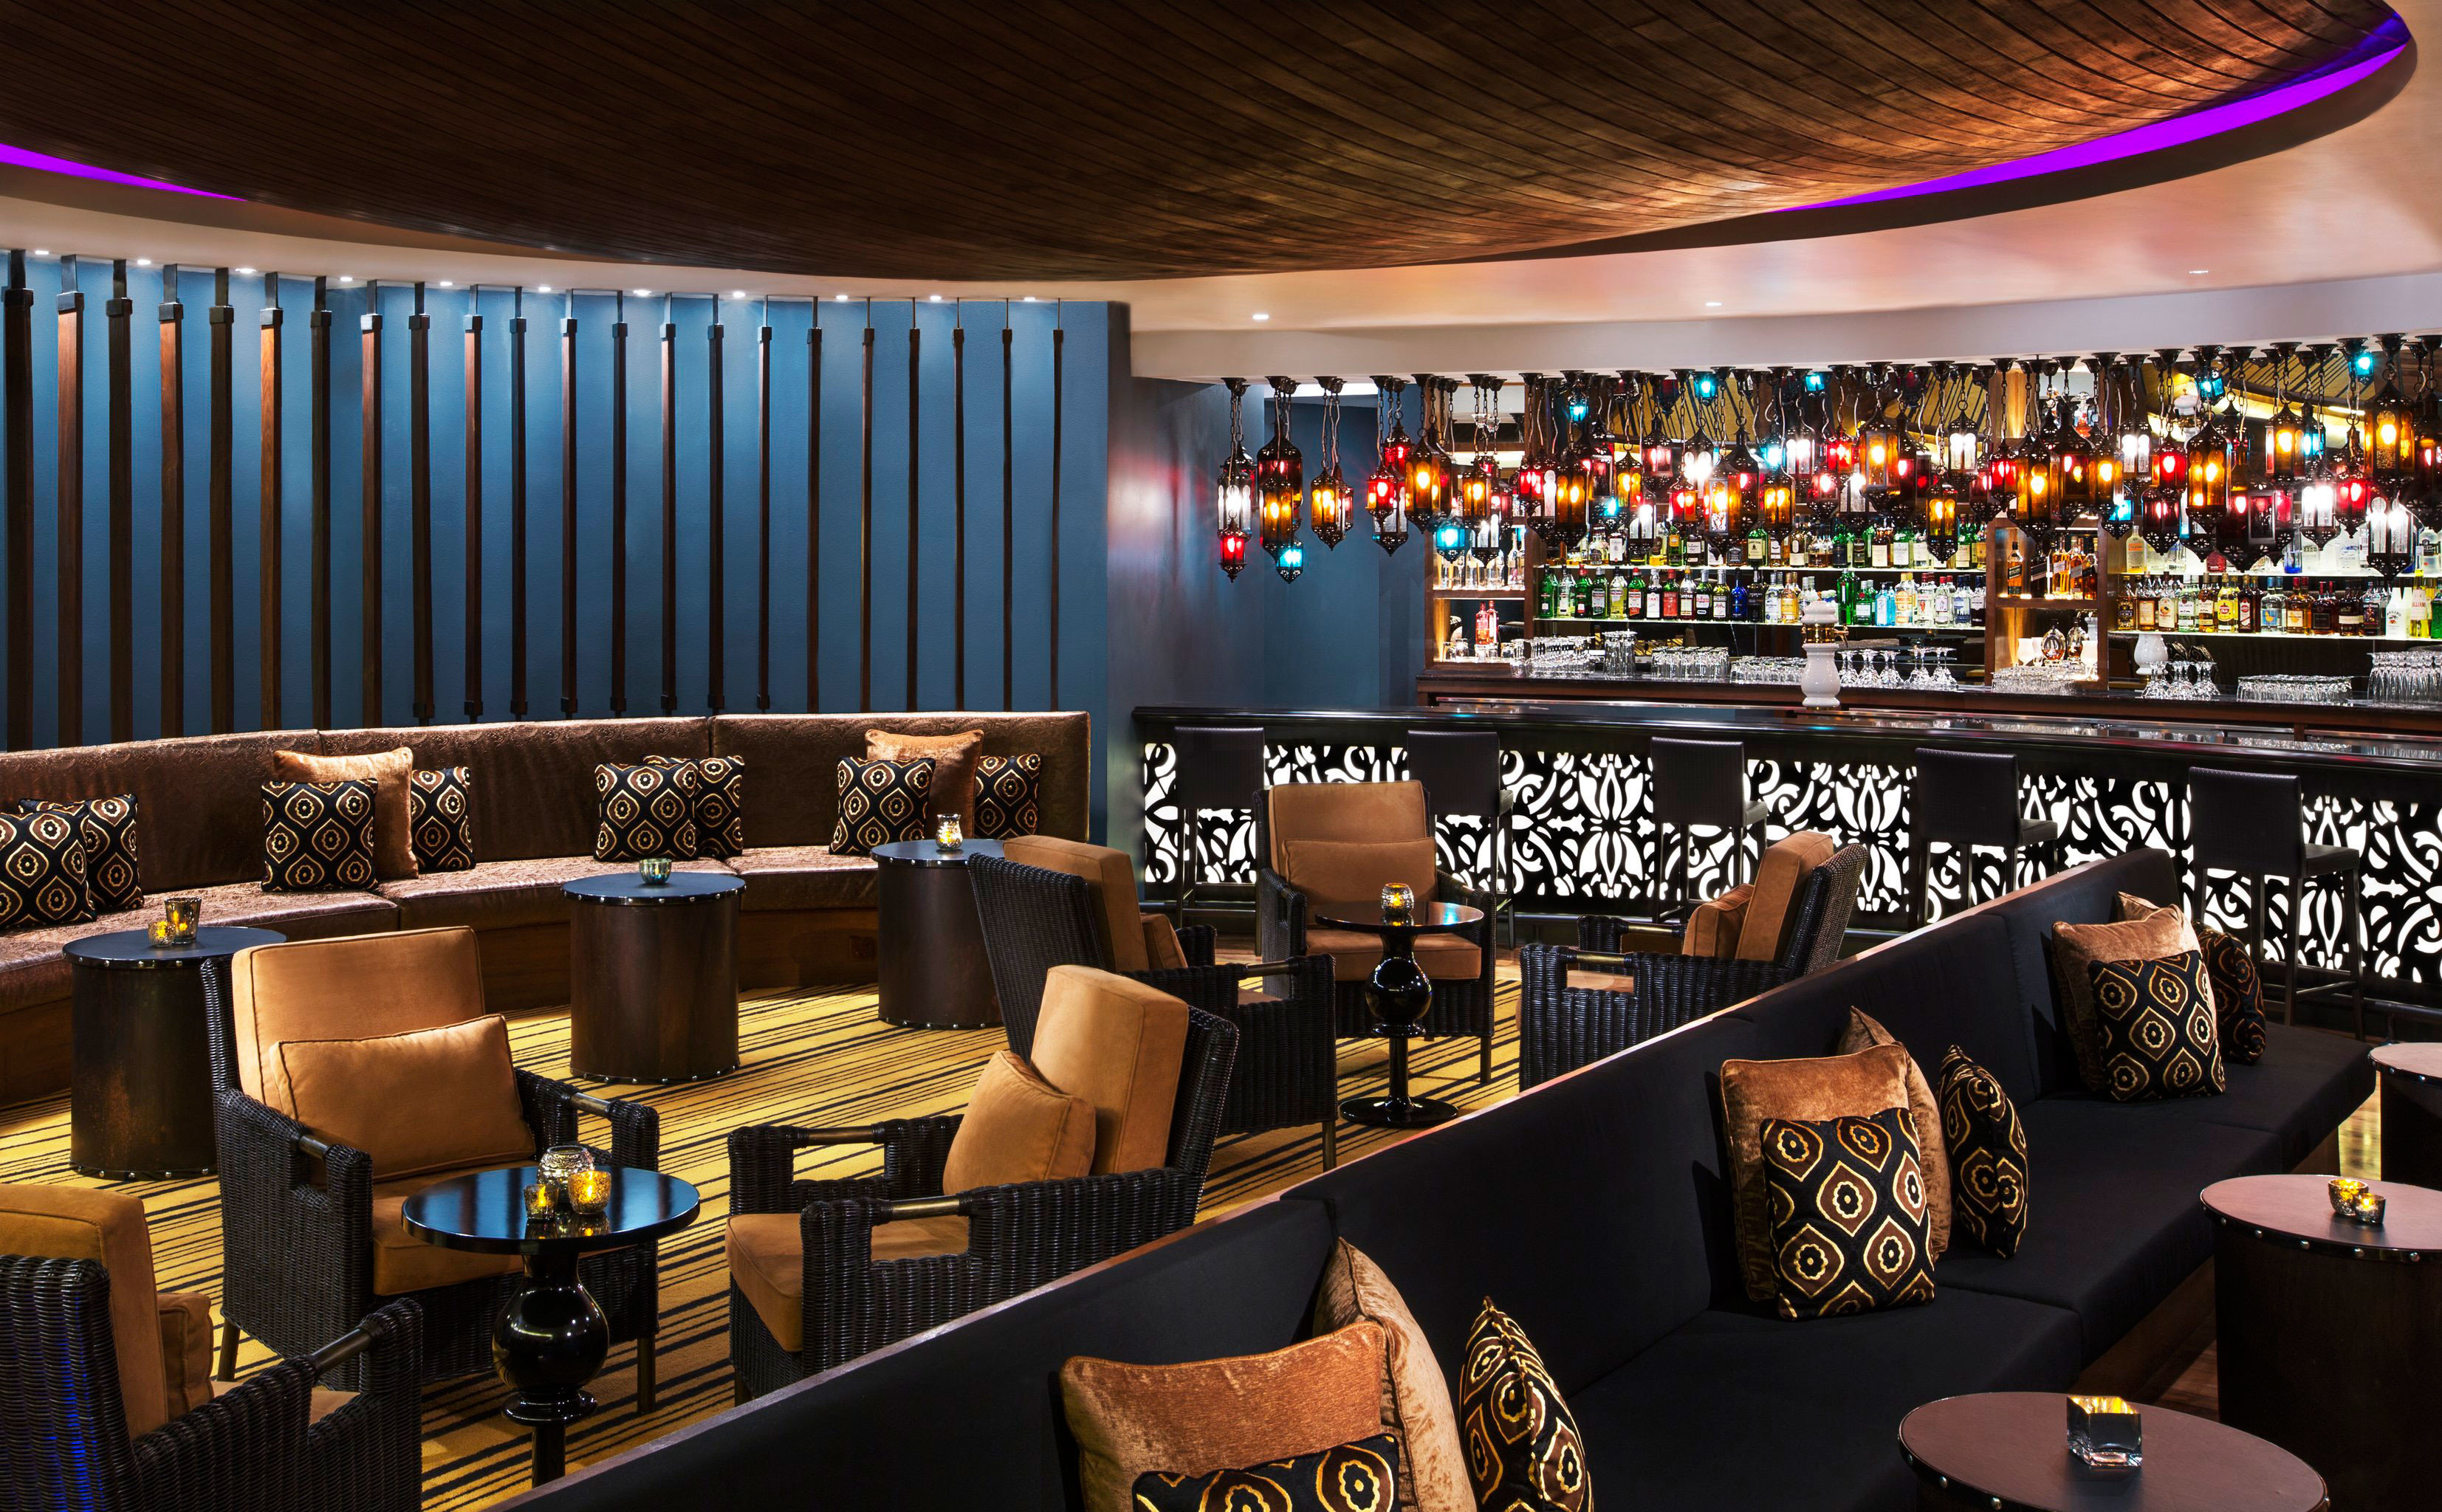 Bar Drink Lounge Nightlife Resort function hall nightclub different colorful colored